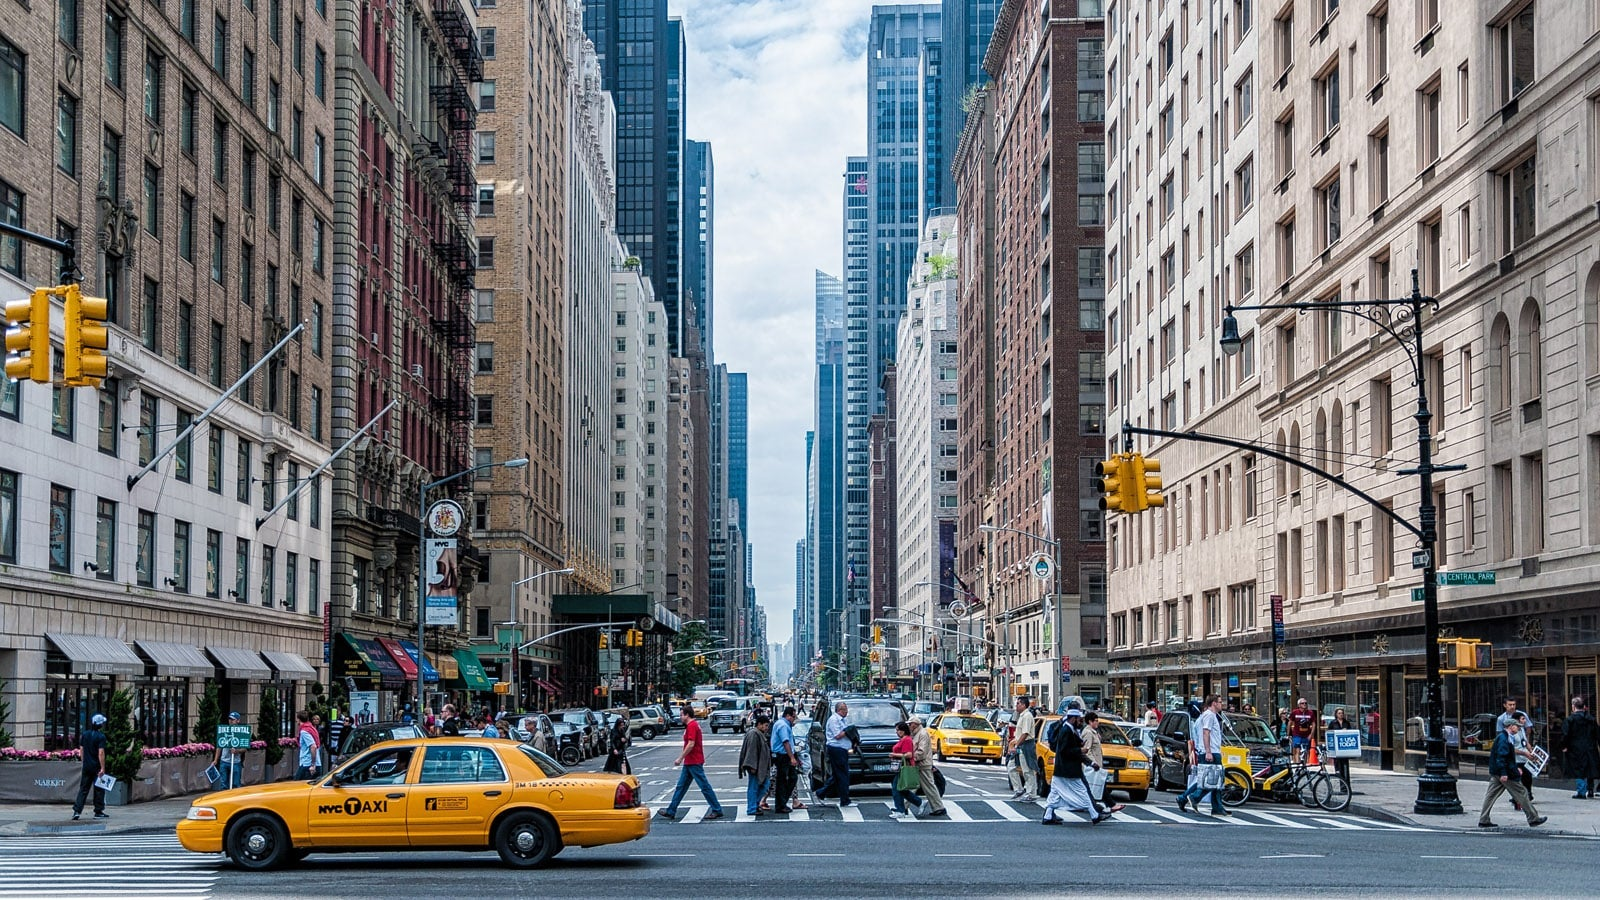 New York City intersection with yellow taxi